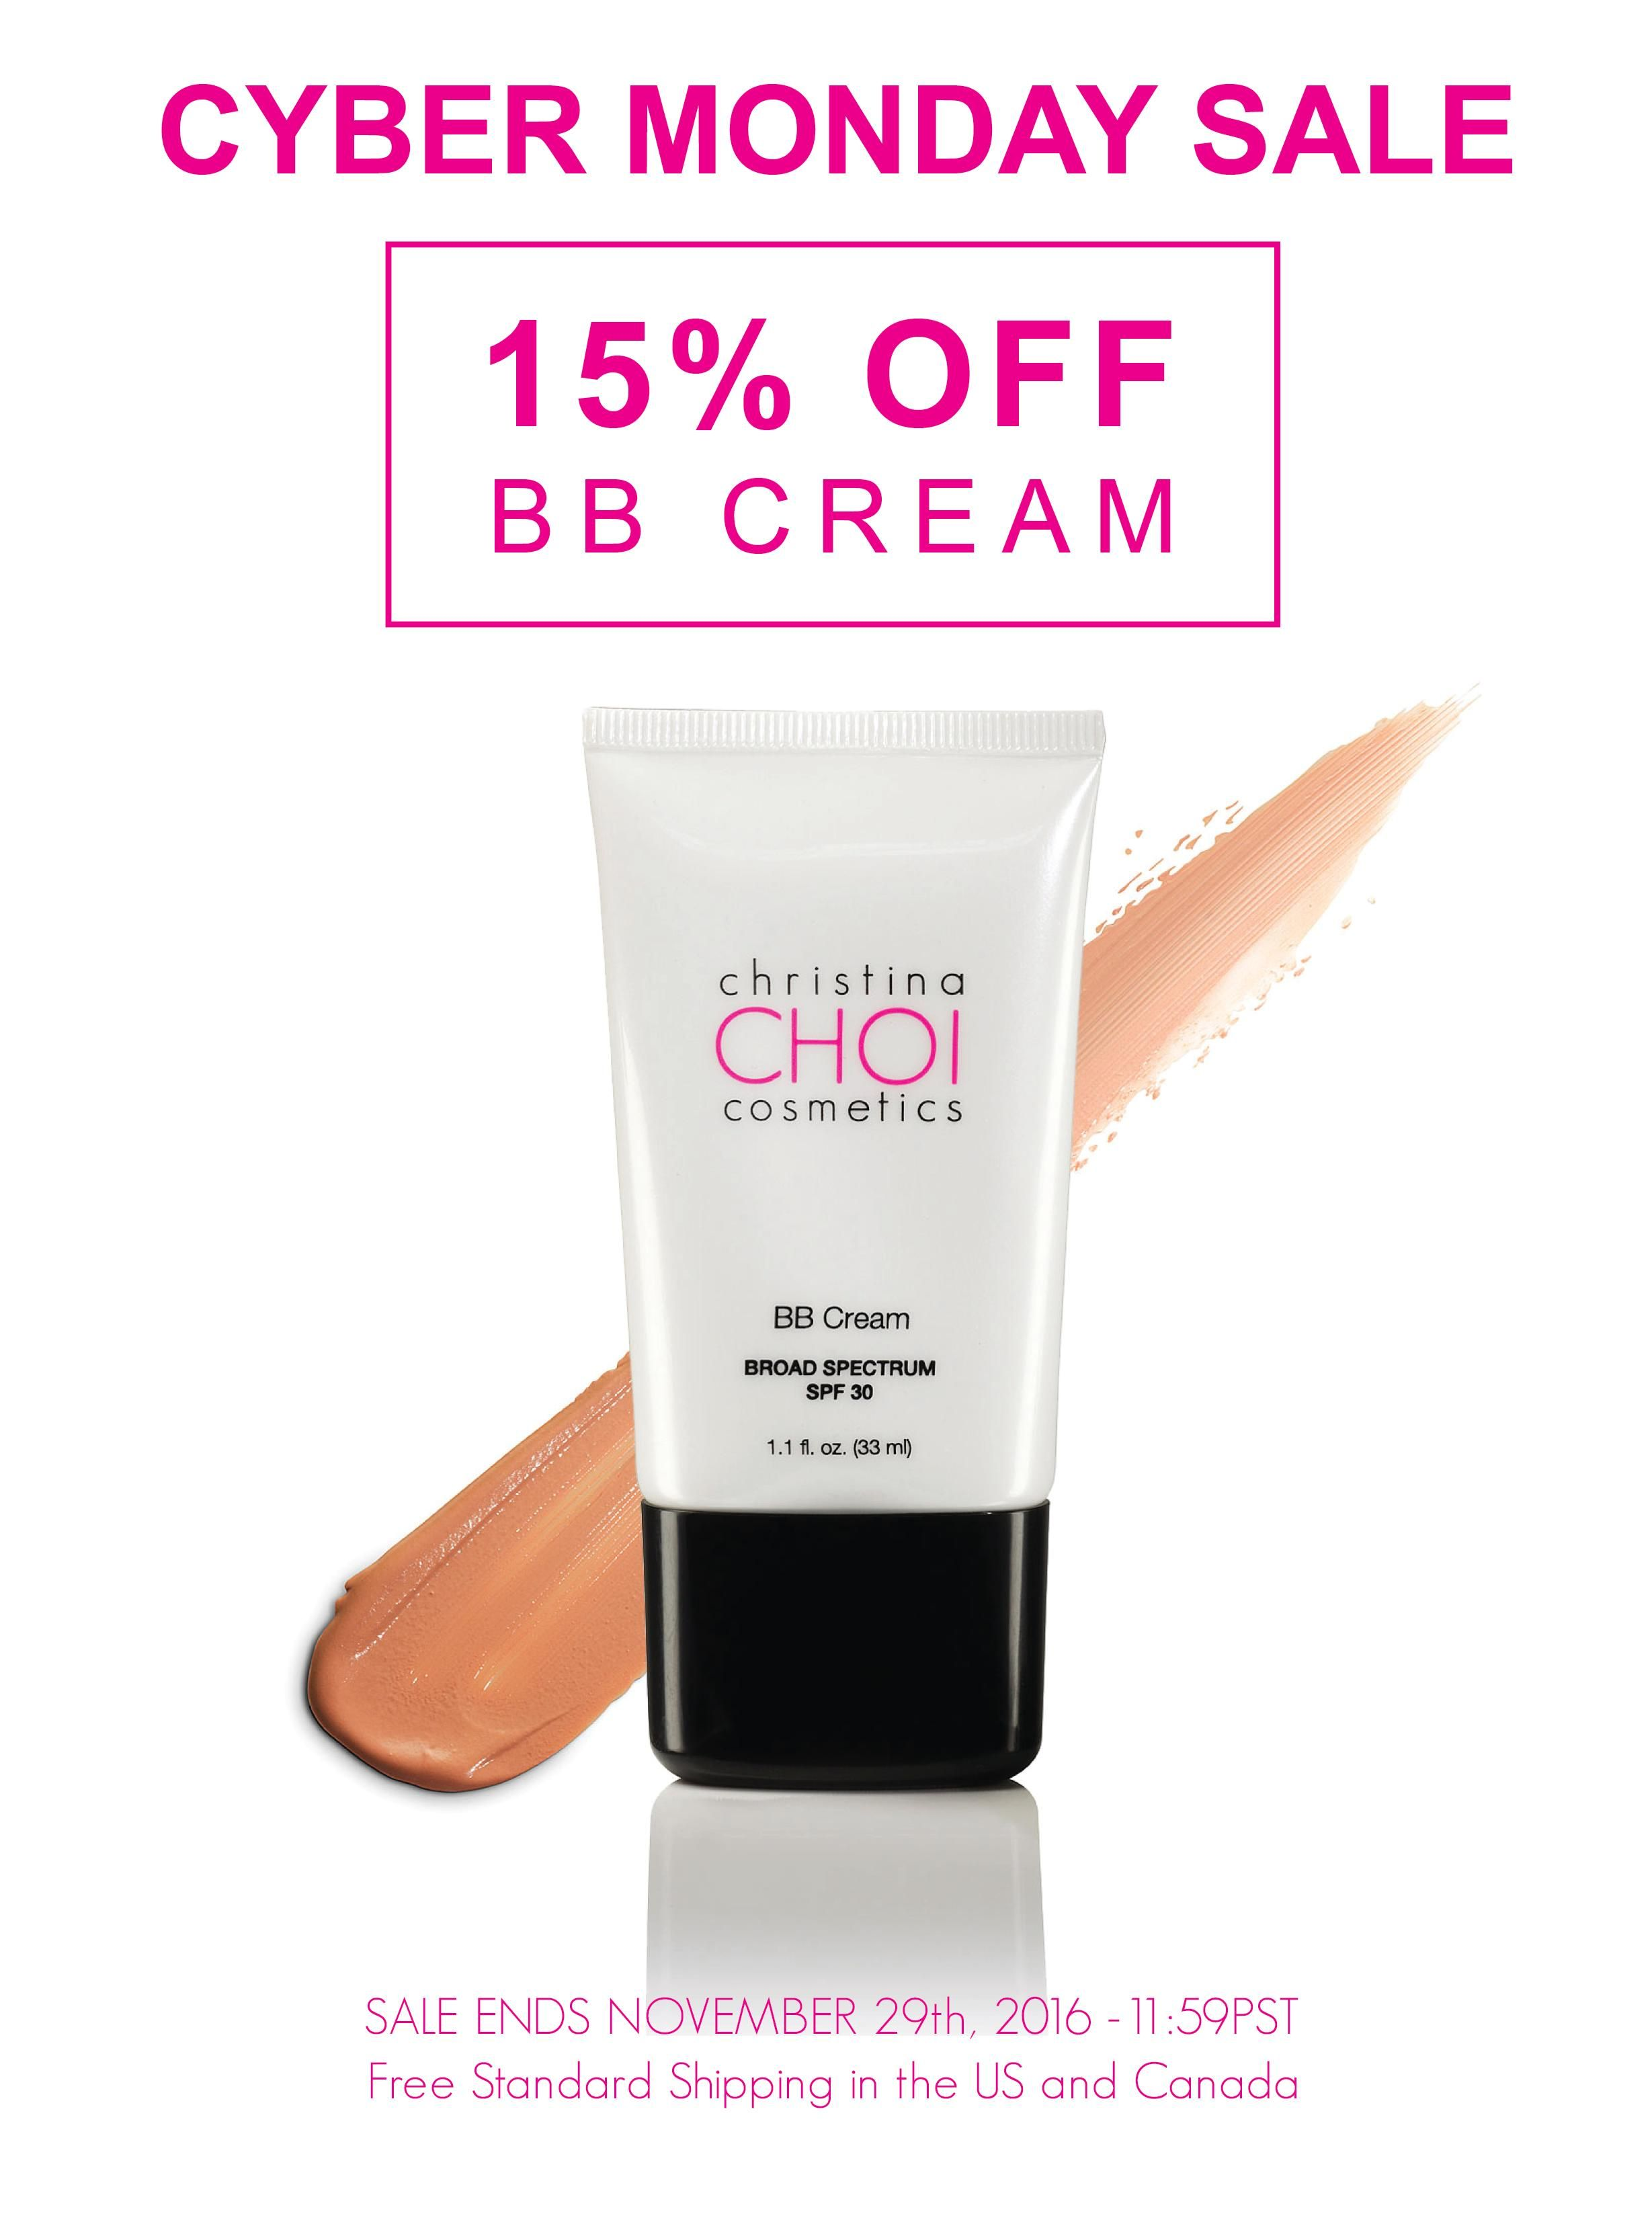 ChristinaChoiCosmetics CyberMonday sale is on! Our